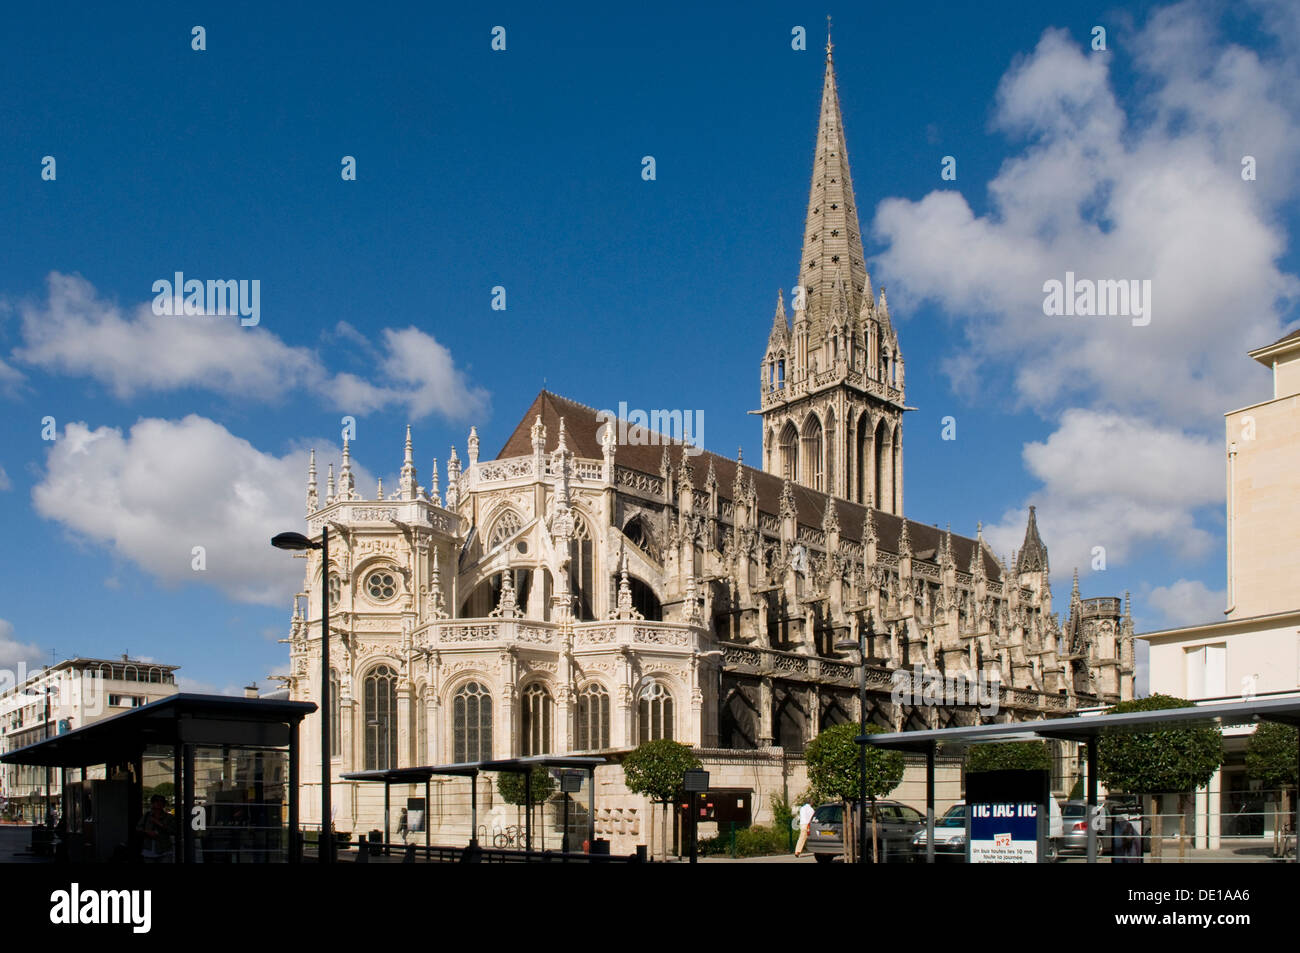 church of st pierre caen normandy france stock photo royalty free image 60266366 alamy. Black Bedroom Furniture Sets. Home Design Ideas